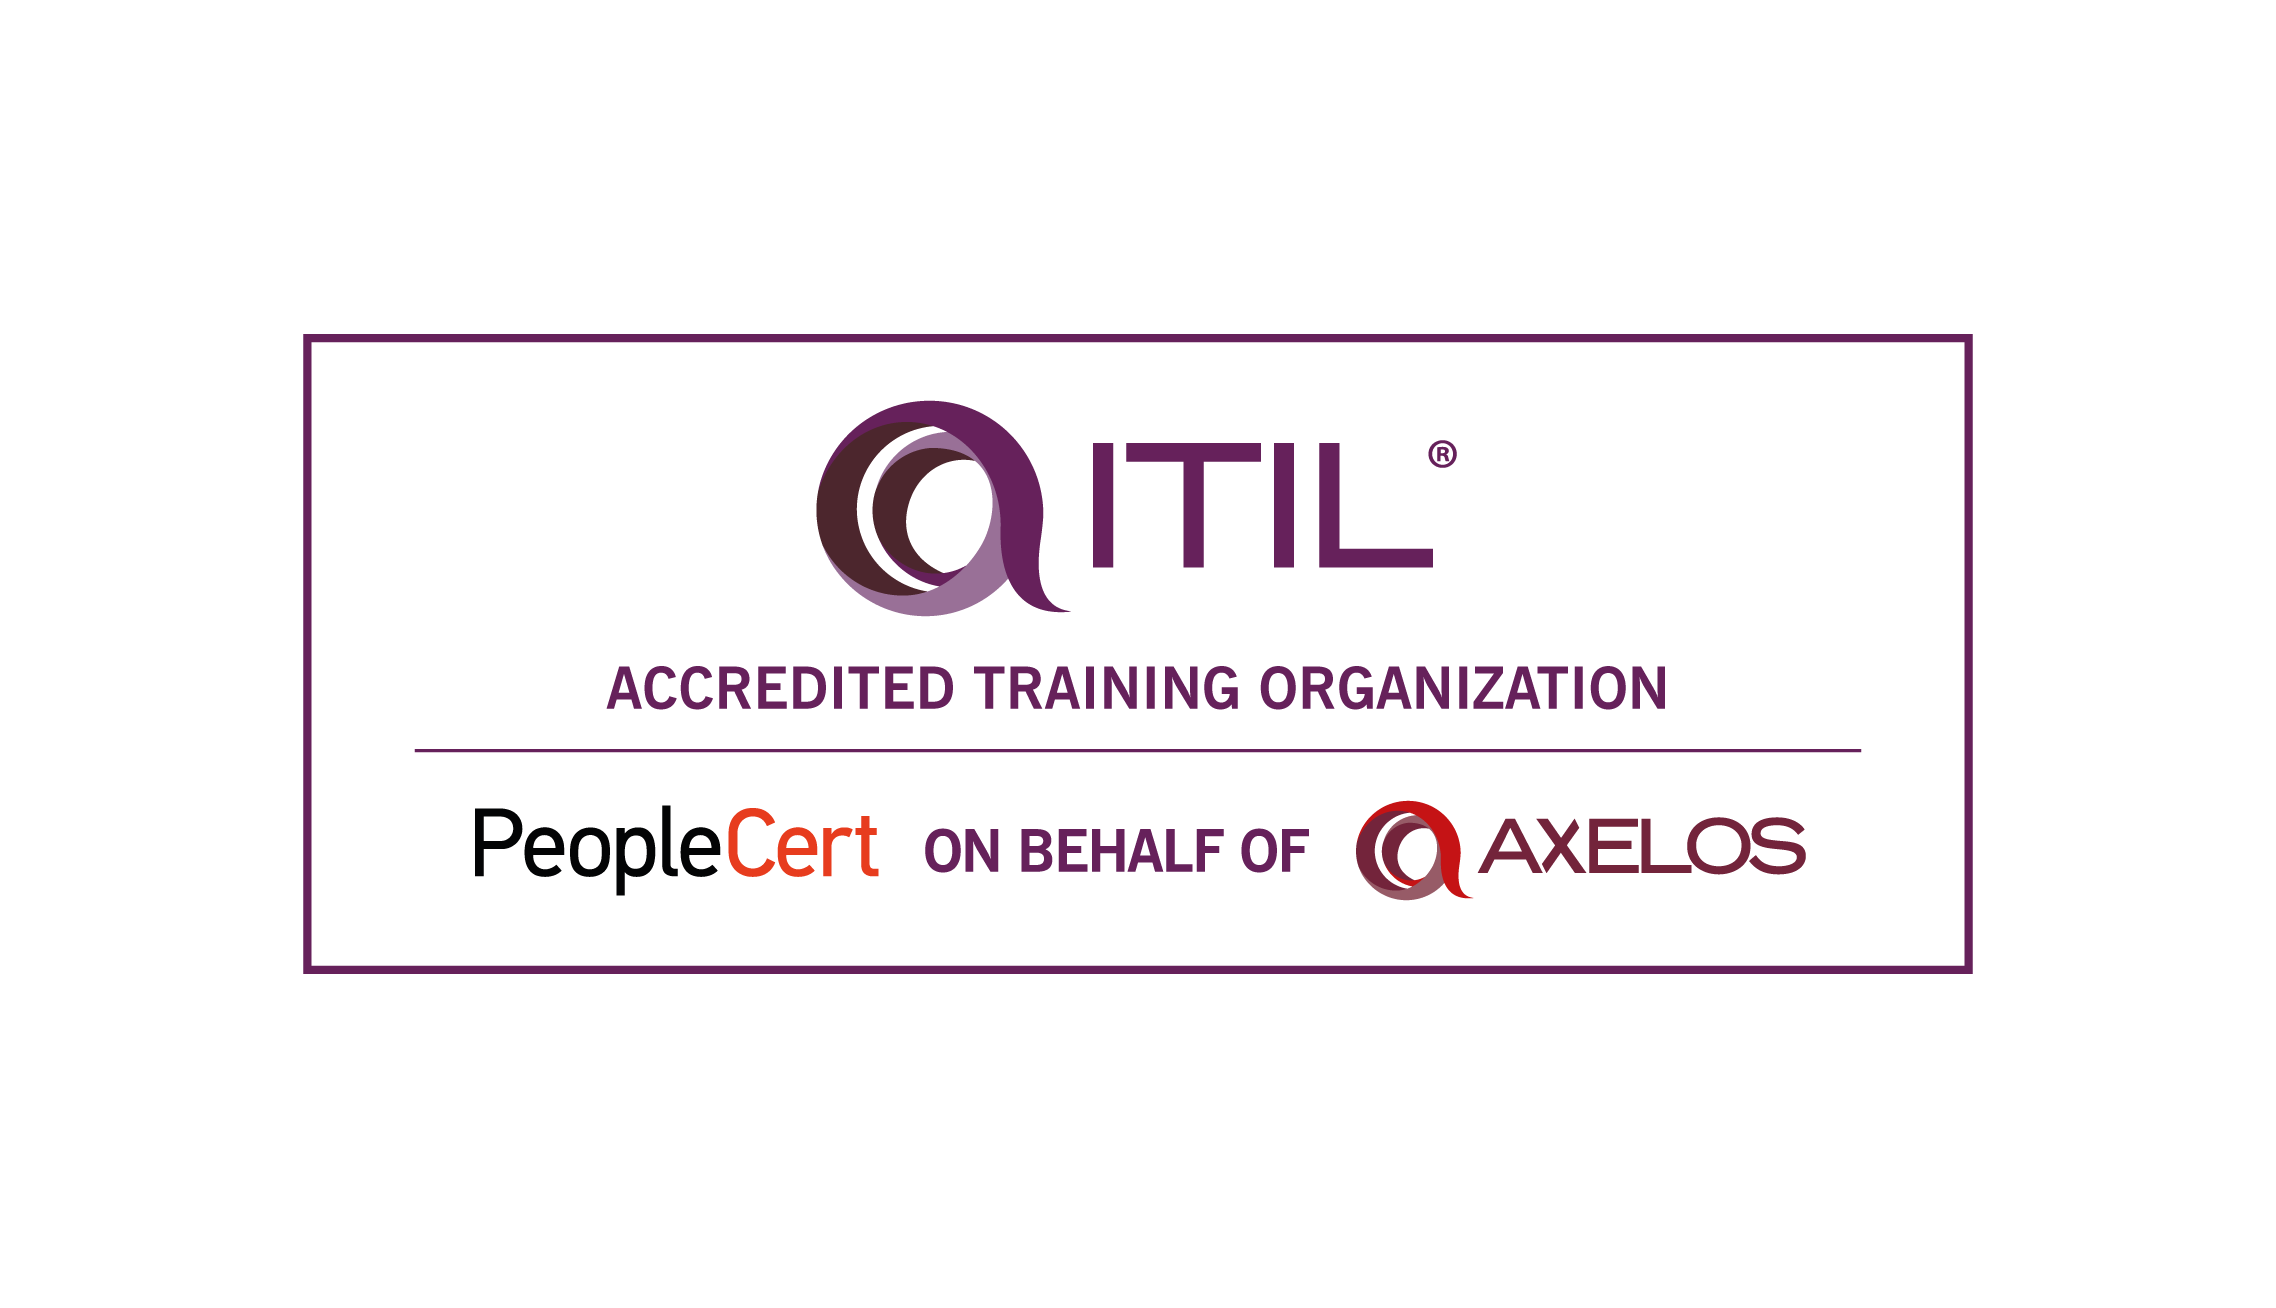 Computrain is Accredited Training Organization voor ITIL